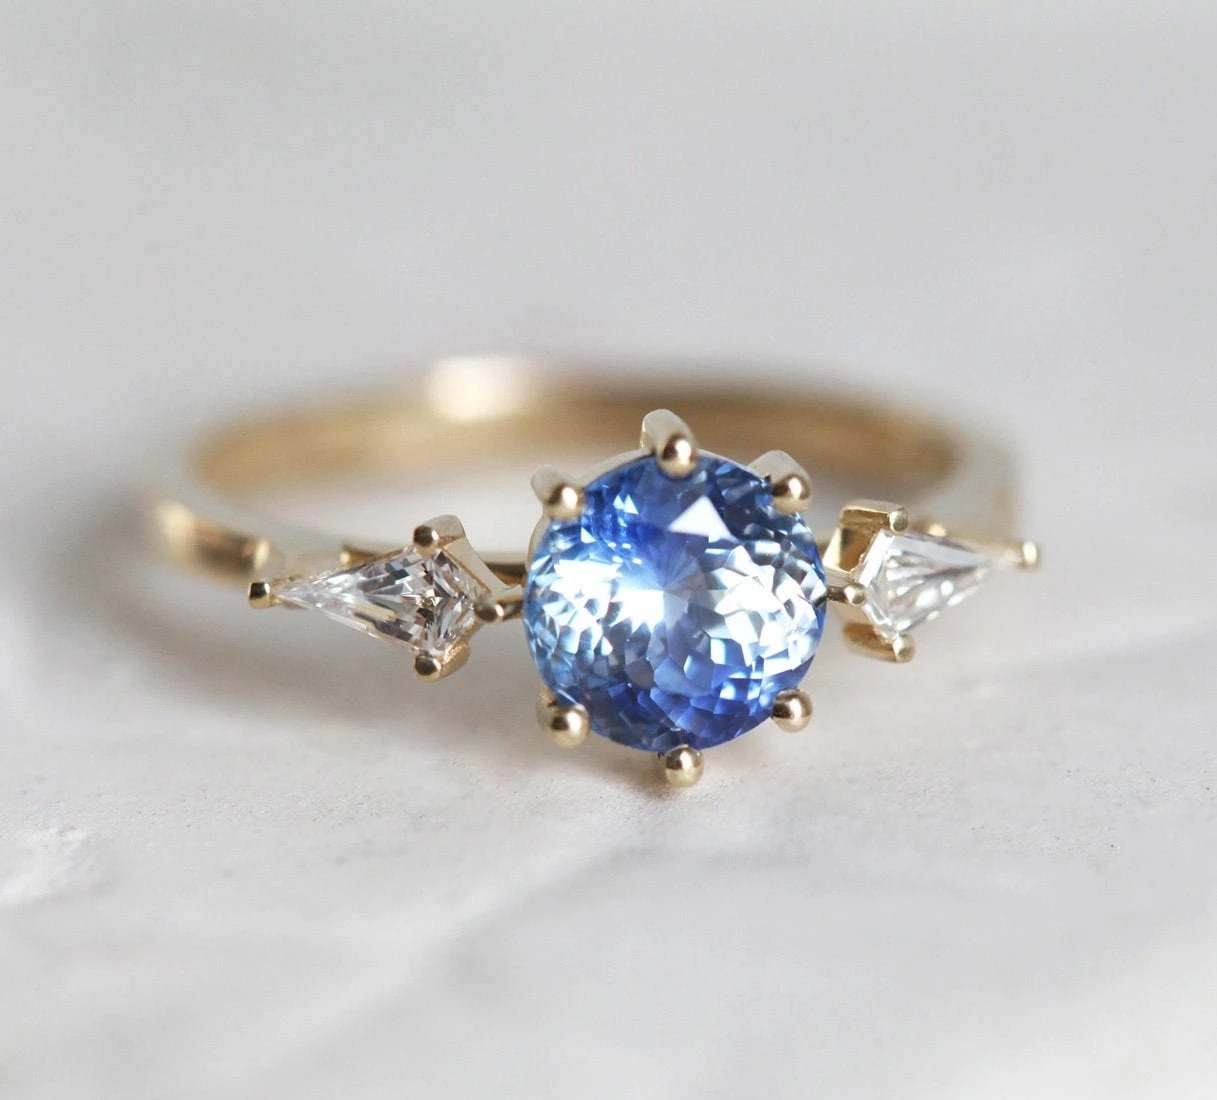 circular blue sapphire engagement ring with kite shaped diamonds on either side of the center stone